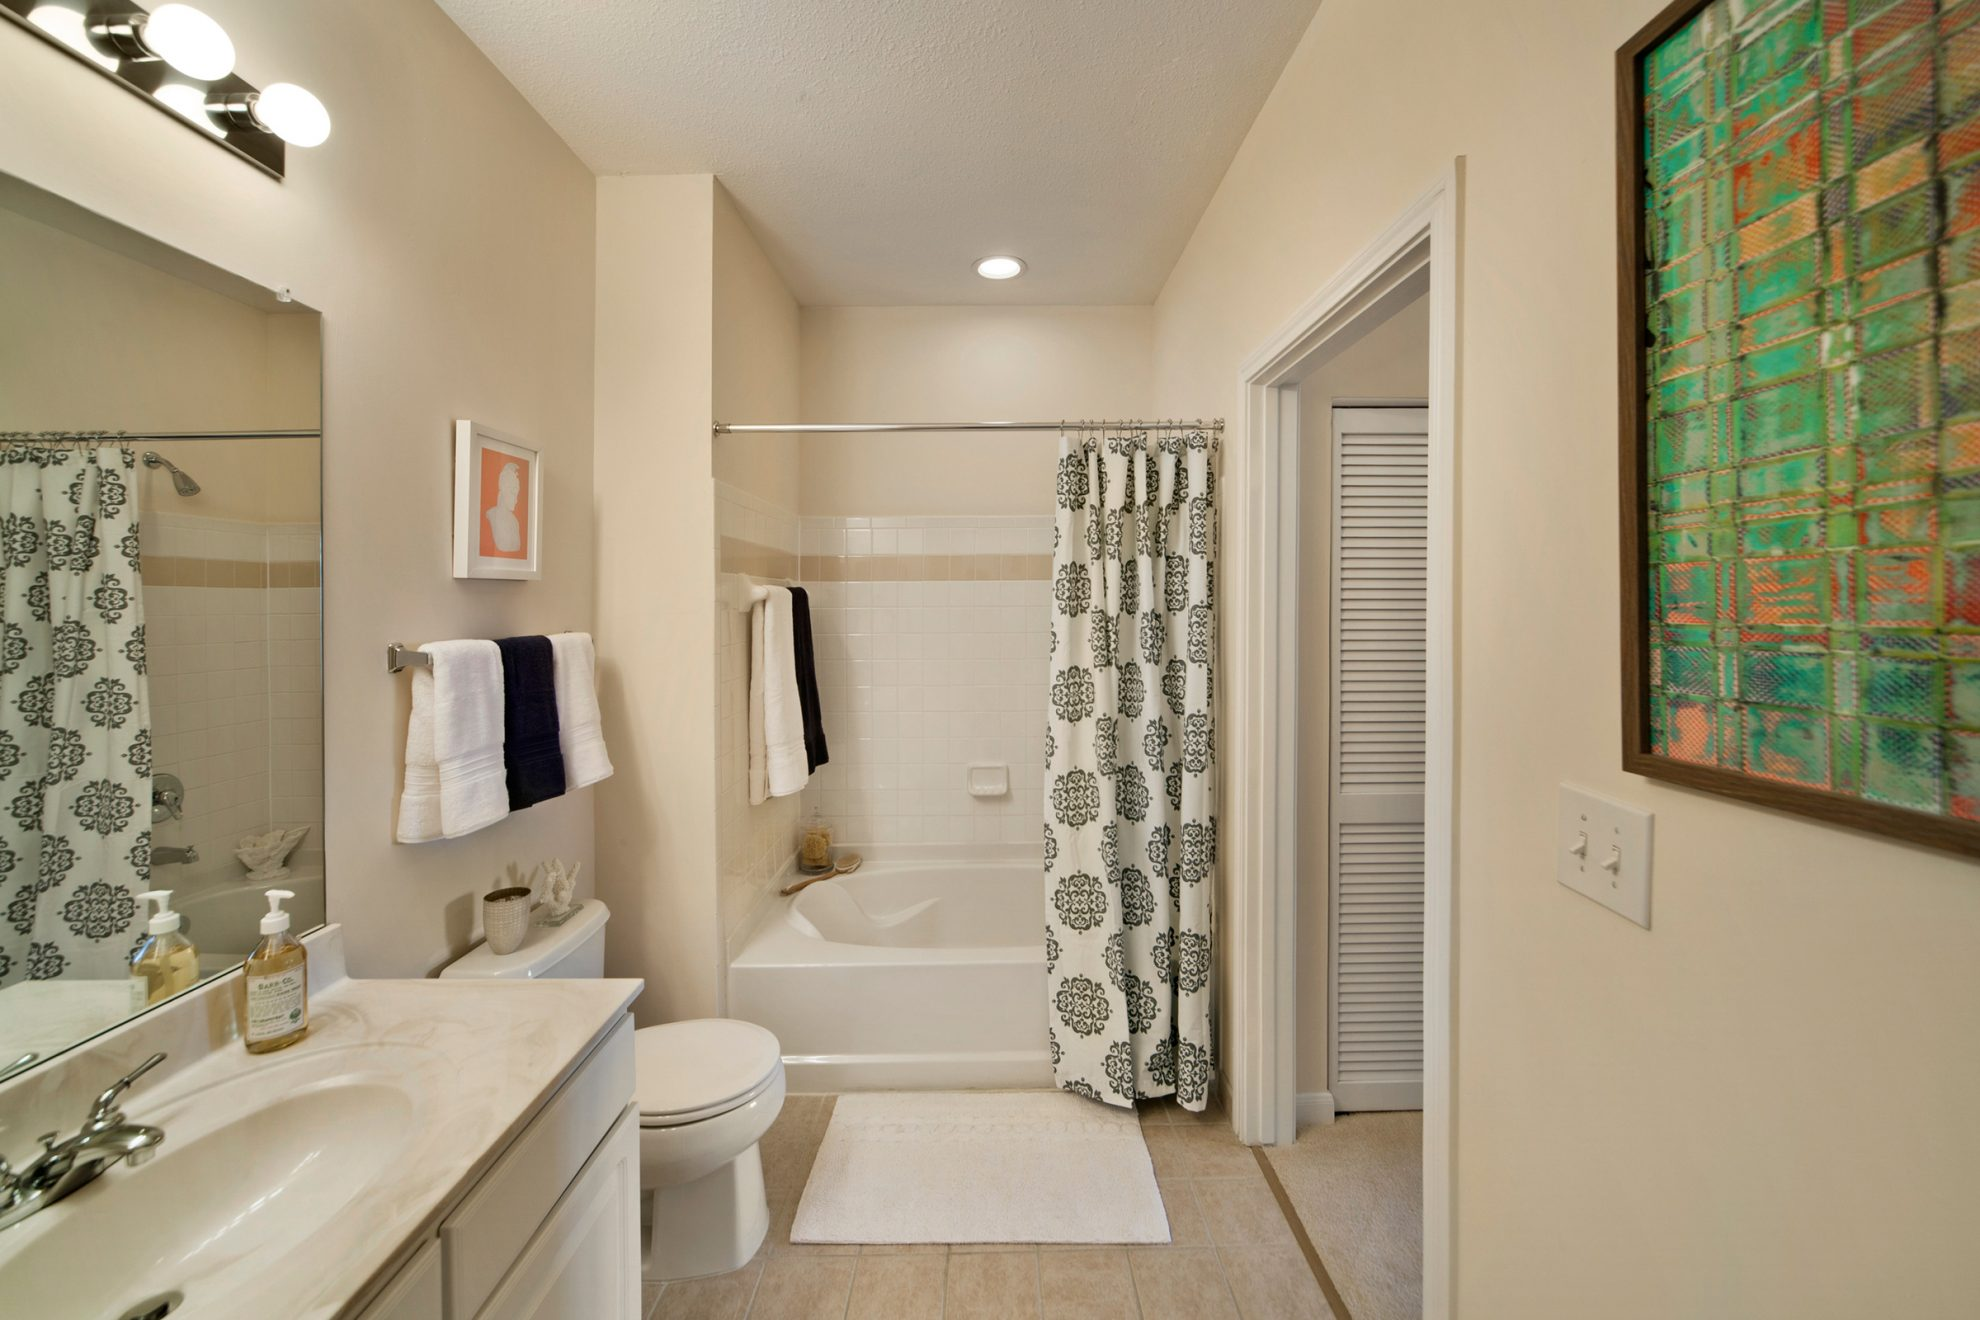 A master bathroom with a large mirror and tiled bathroom.